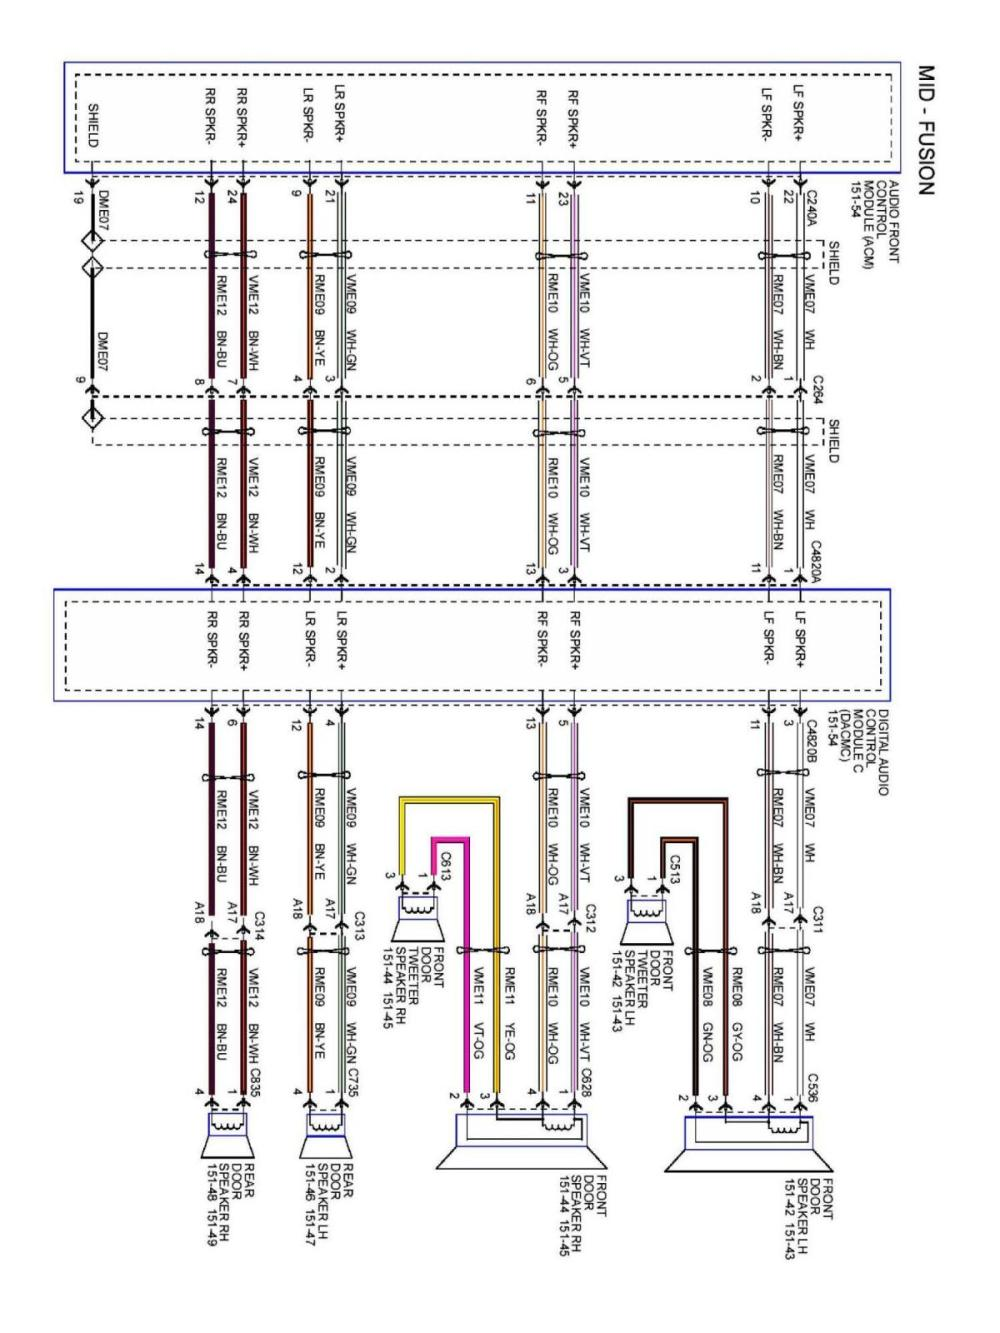 medium resolution of ford fusion wiring diagrams wiring diagram schematics panterra fusion wiring diagram 2014 ford fusion wiring